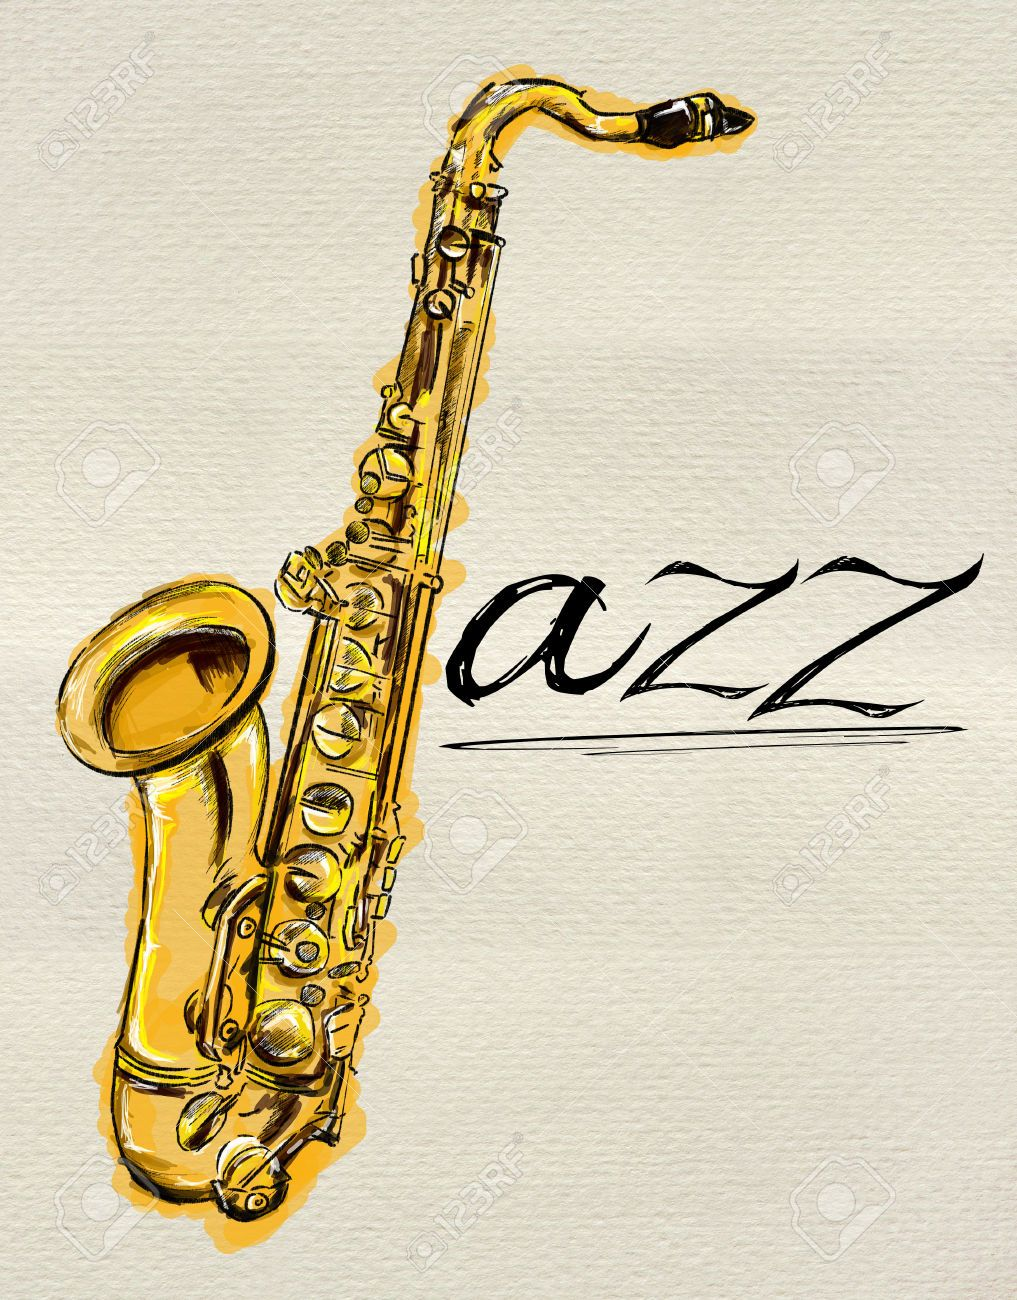 jazz saxophone google search tones of jazz pinterest saxophone clip art dots saxophone clip art black and white